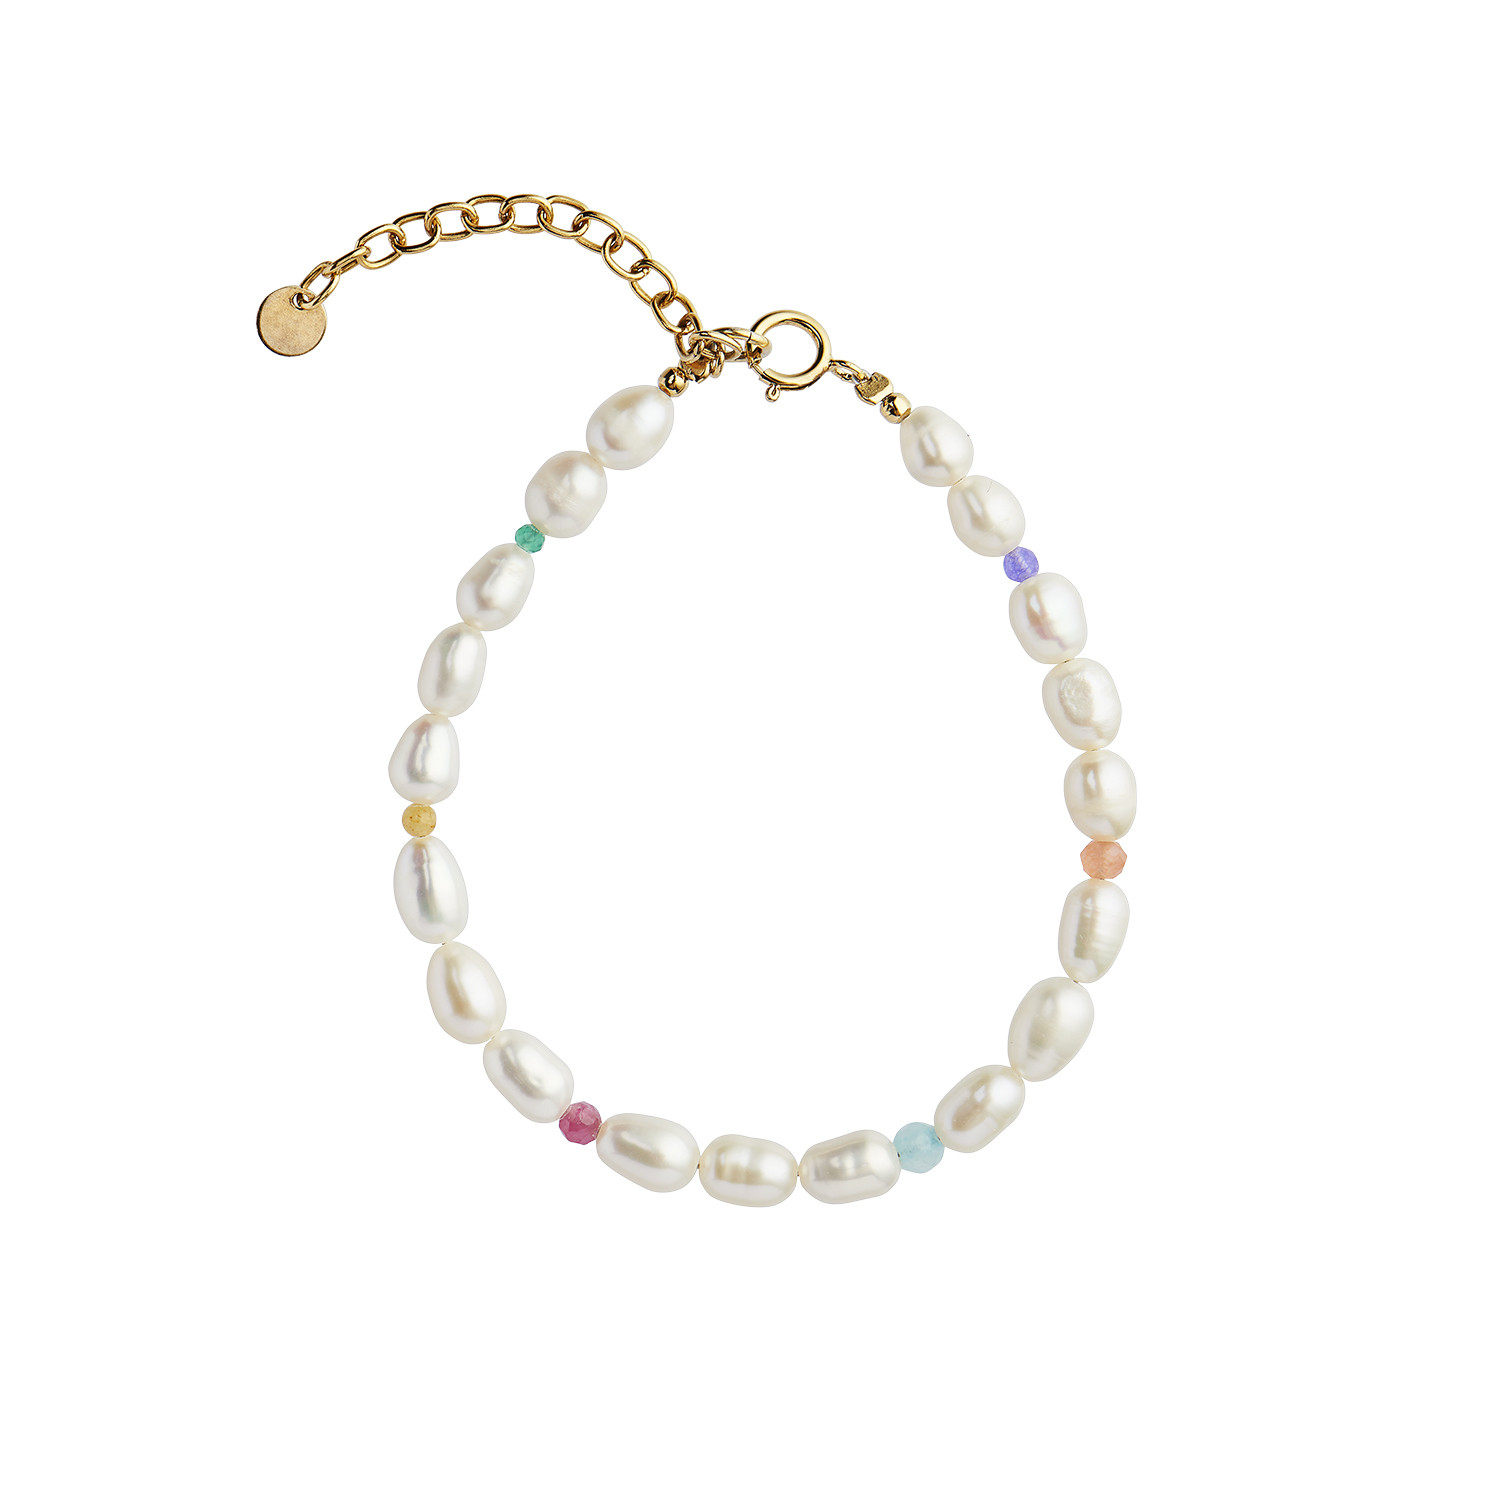 White Pearls and Candy Stones Bracelet Gold